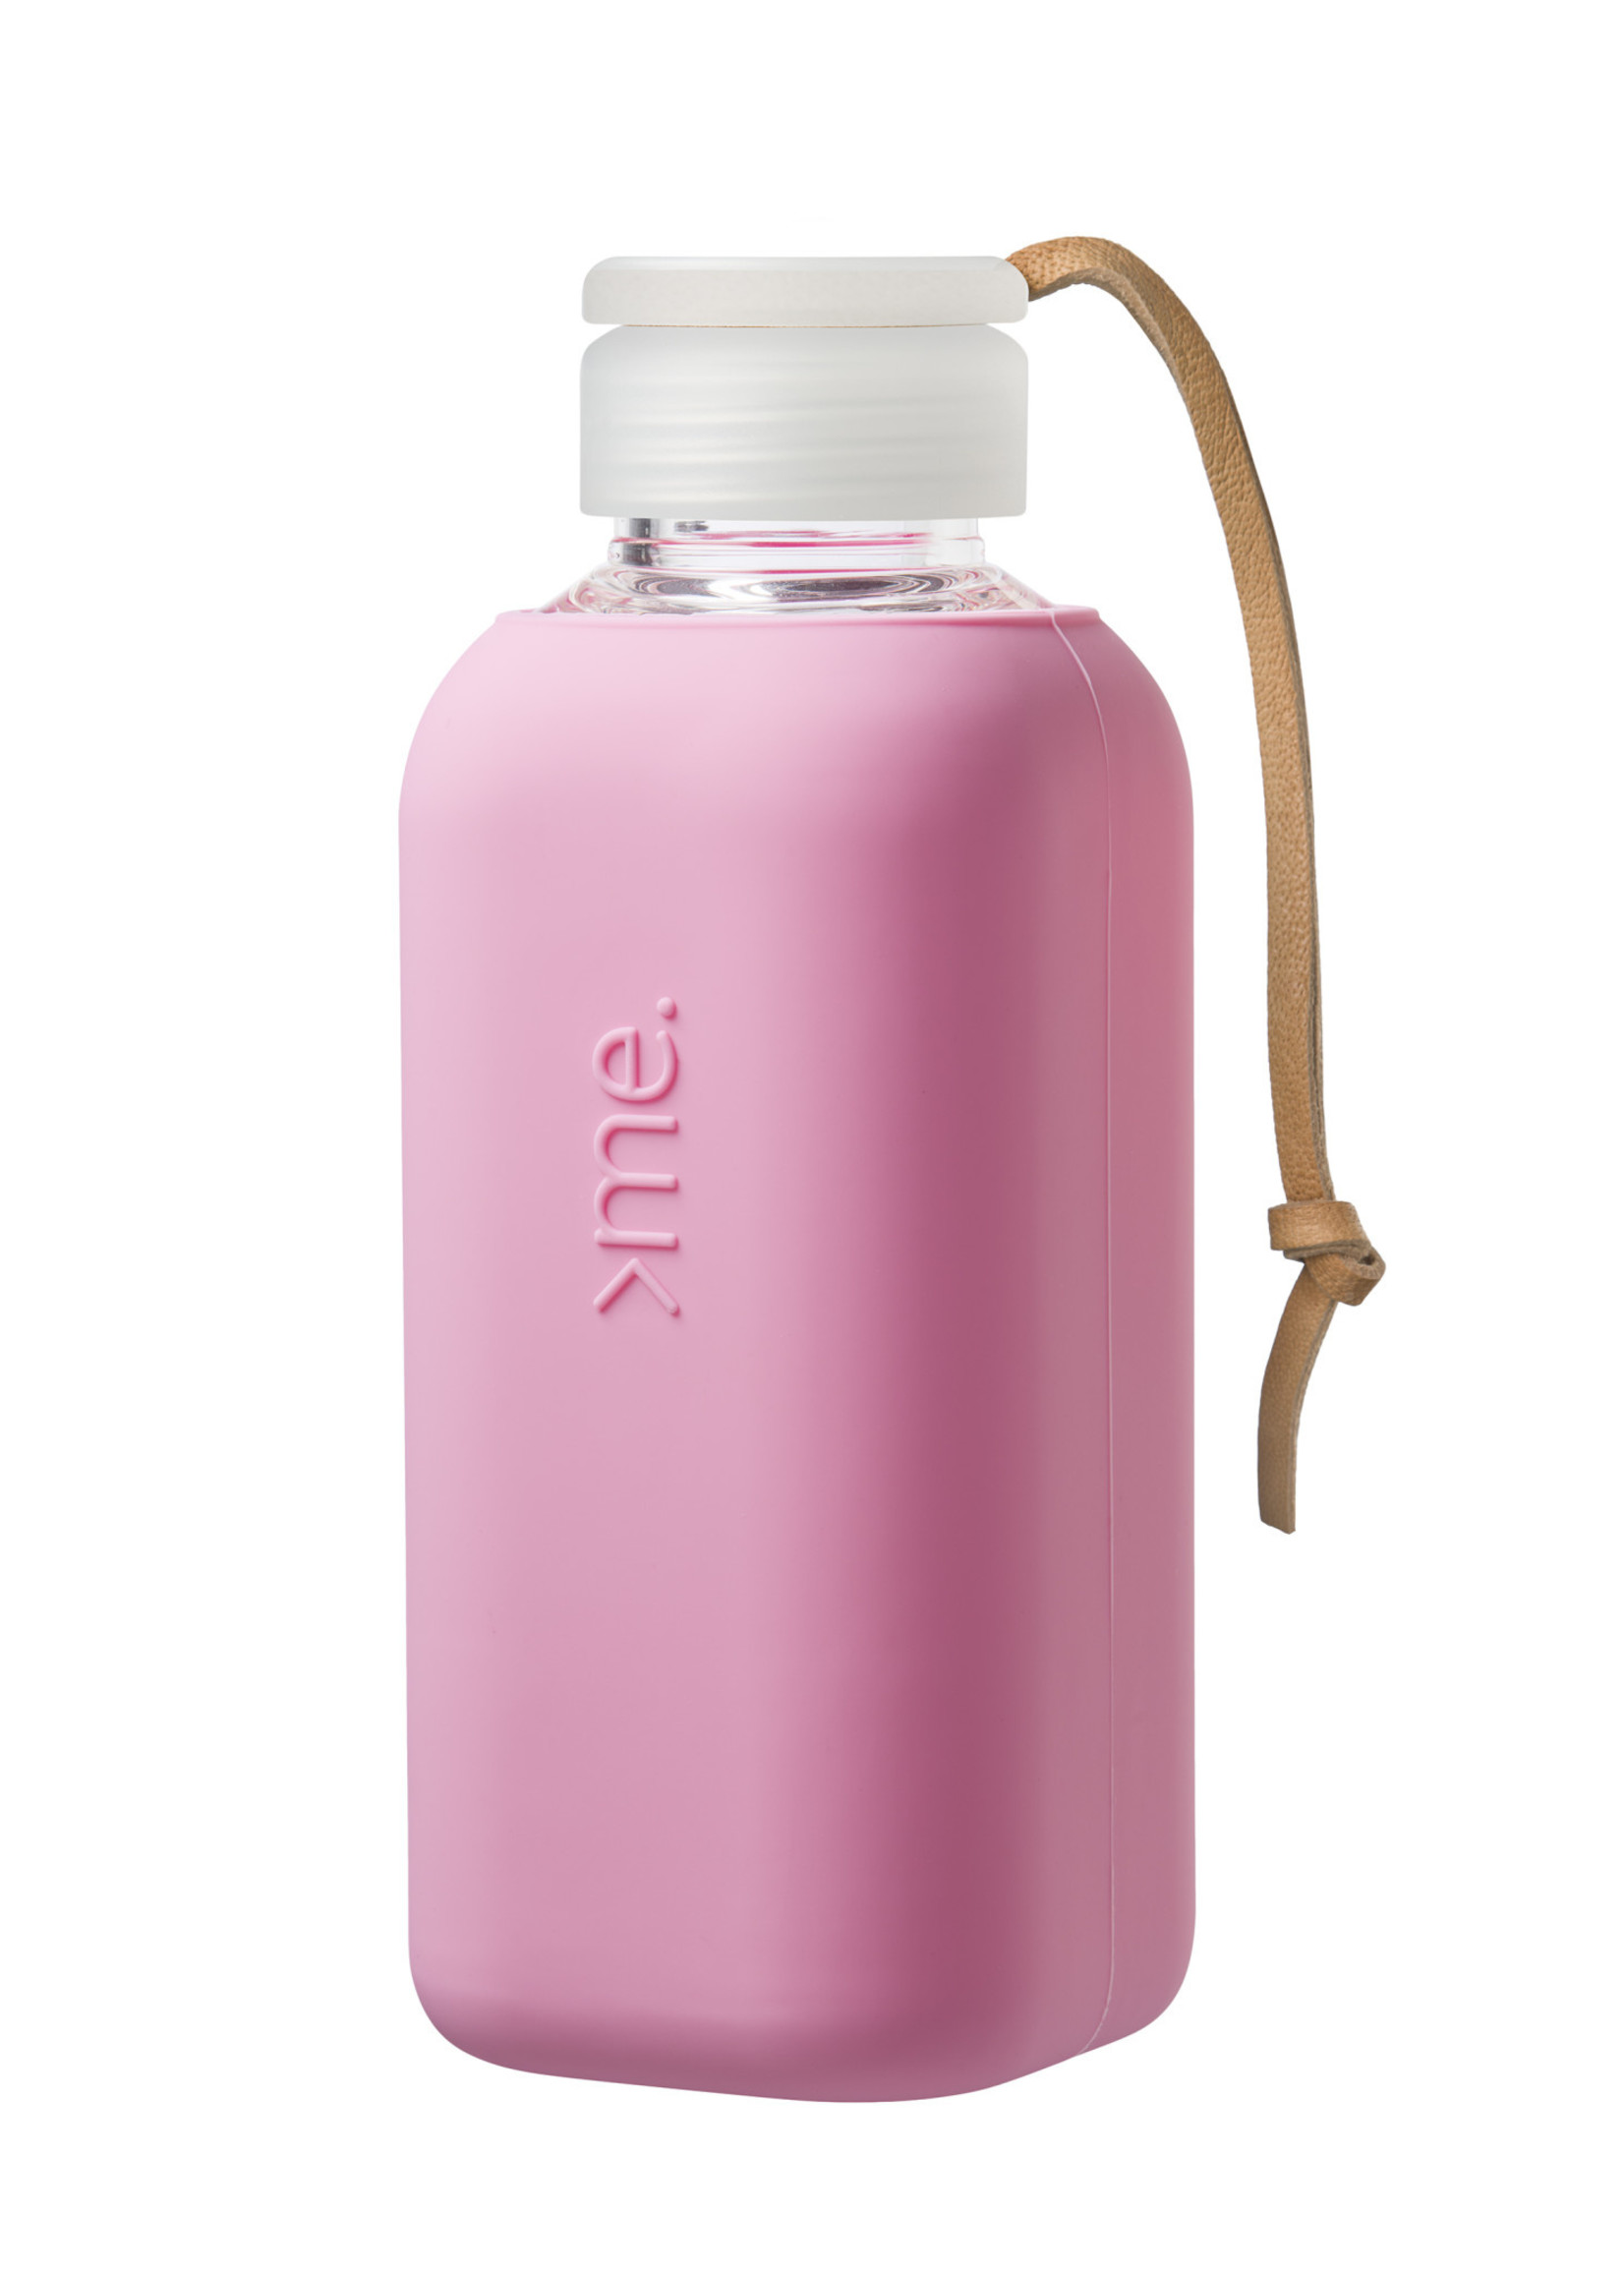 SQUIREME SQUIREME Y1 Bottle 600ml POWDER PINK